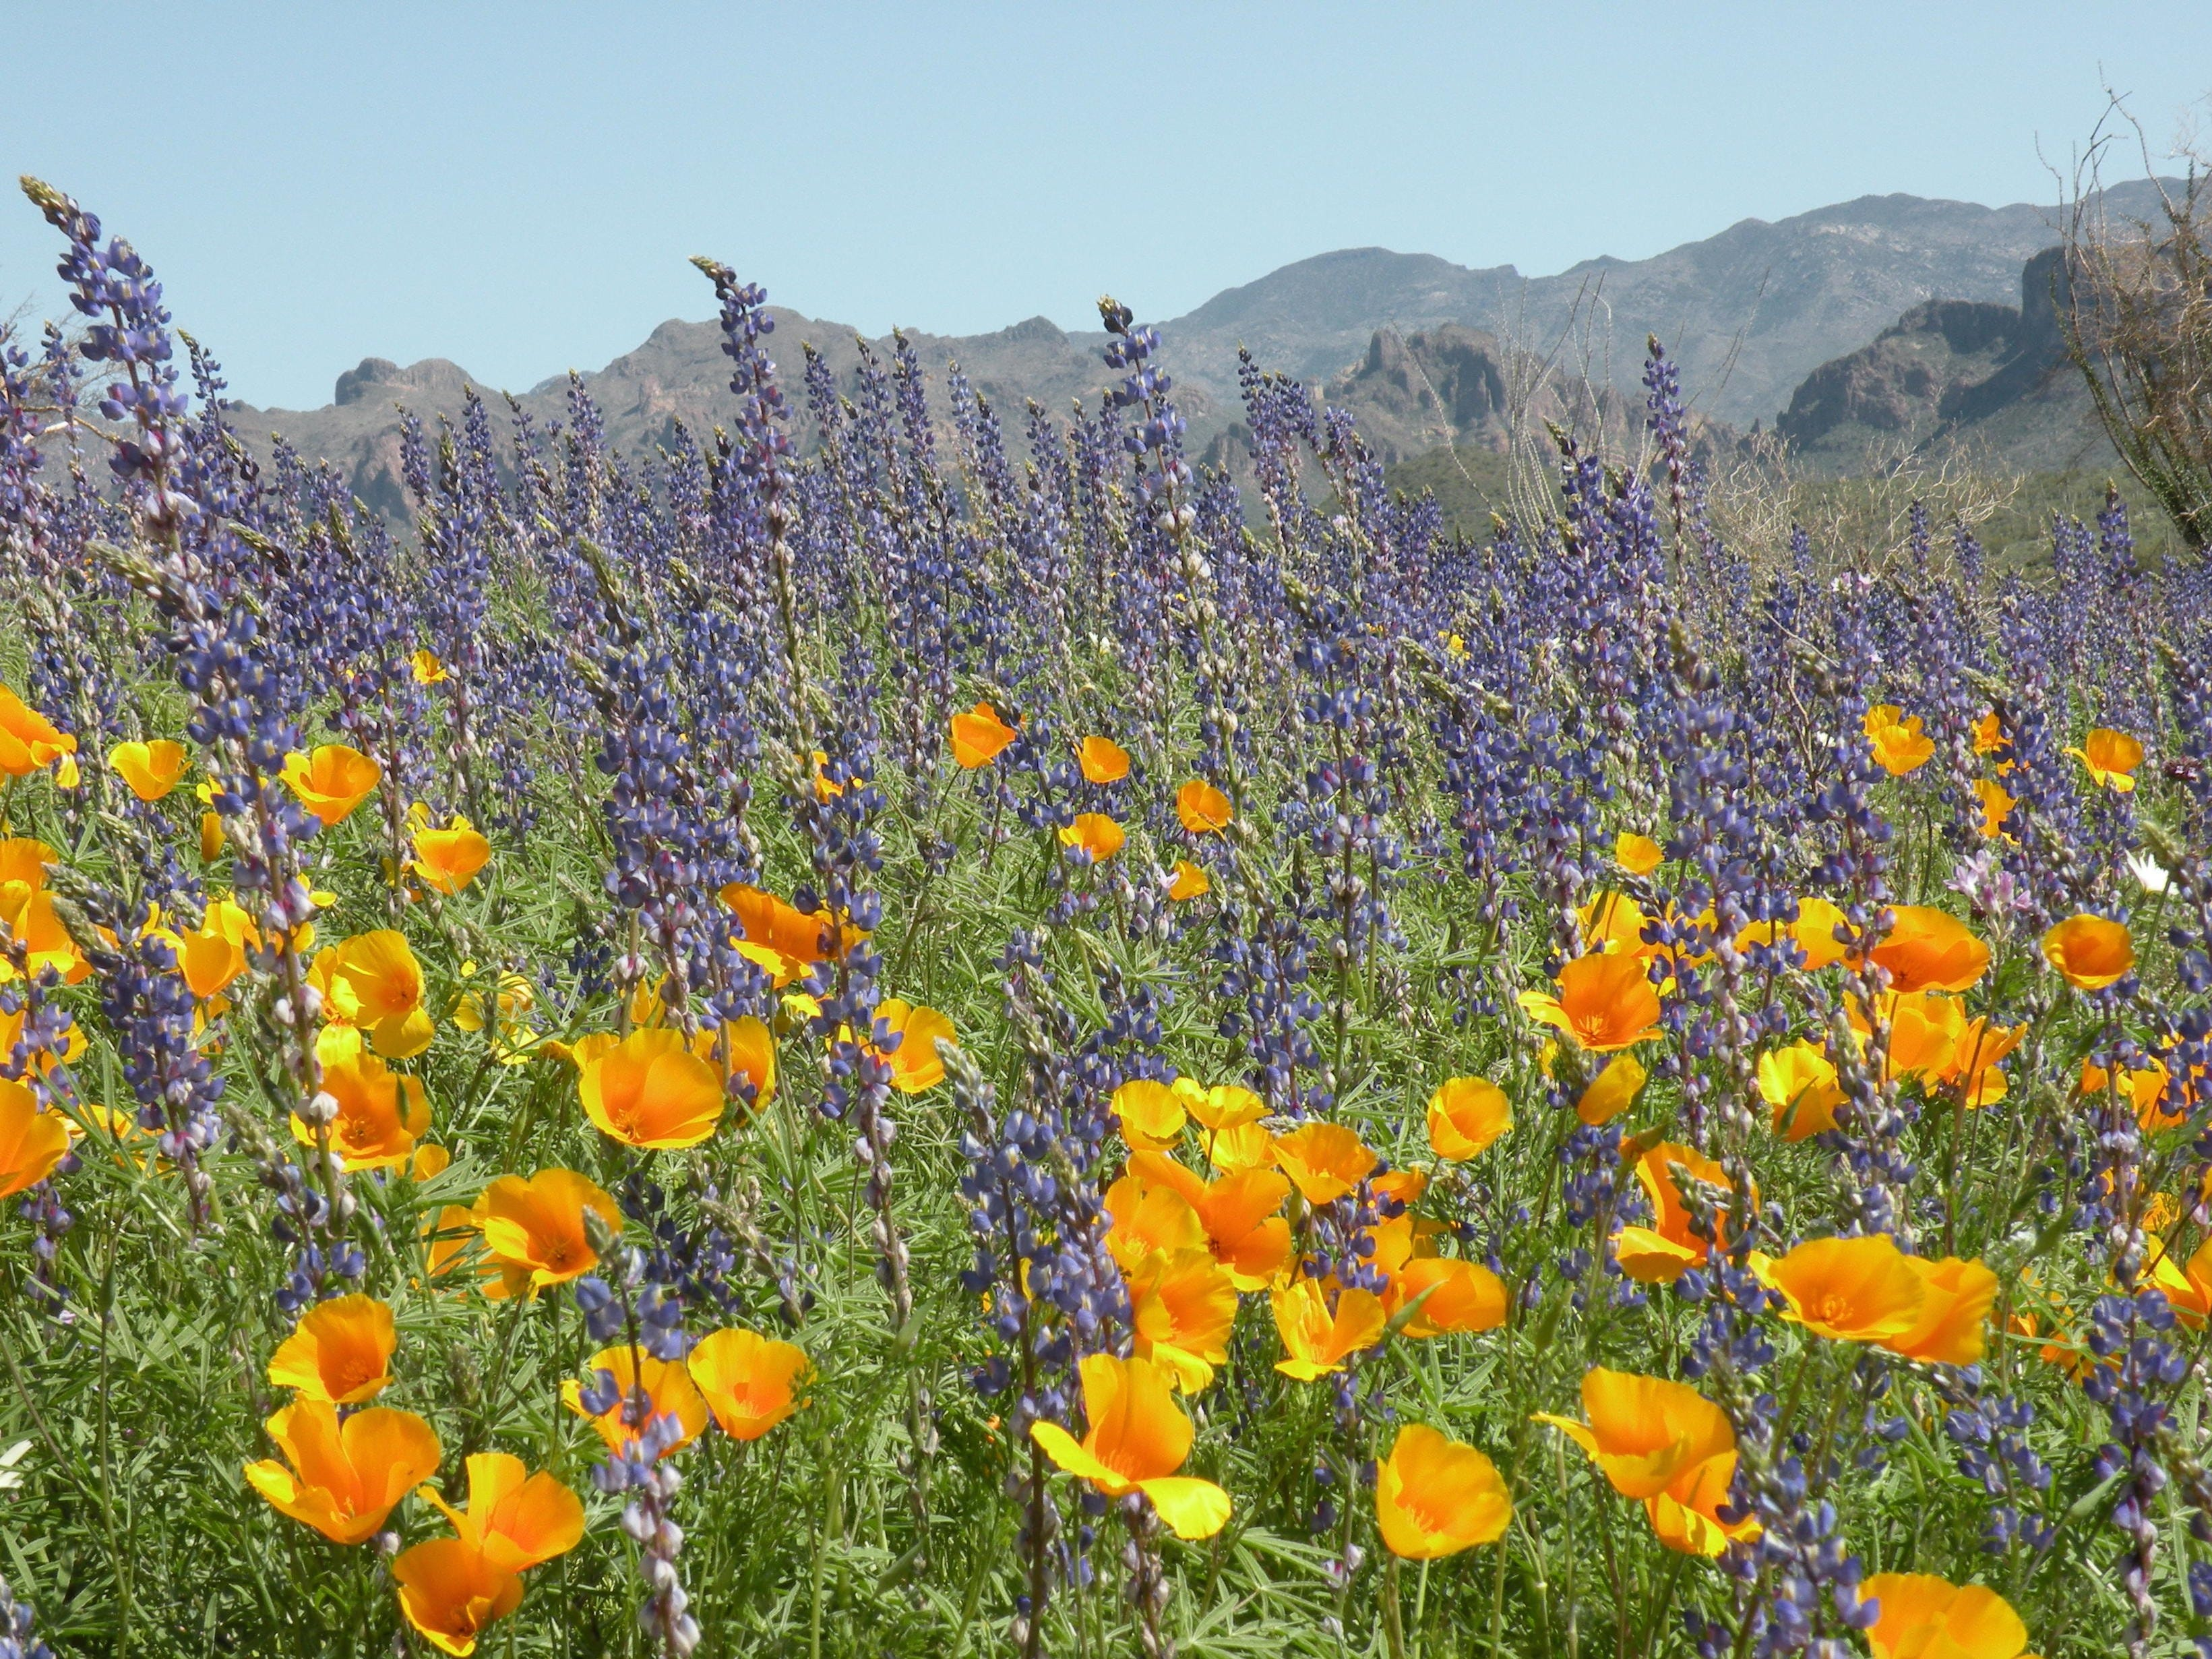 Poppies and lupine make a colorful statement in Arizona's desert.